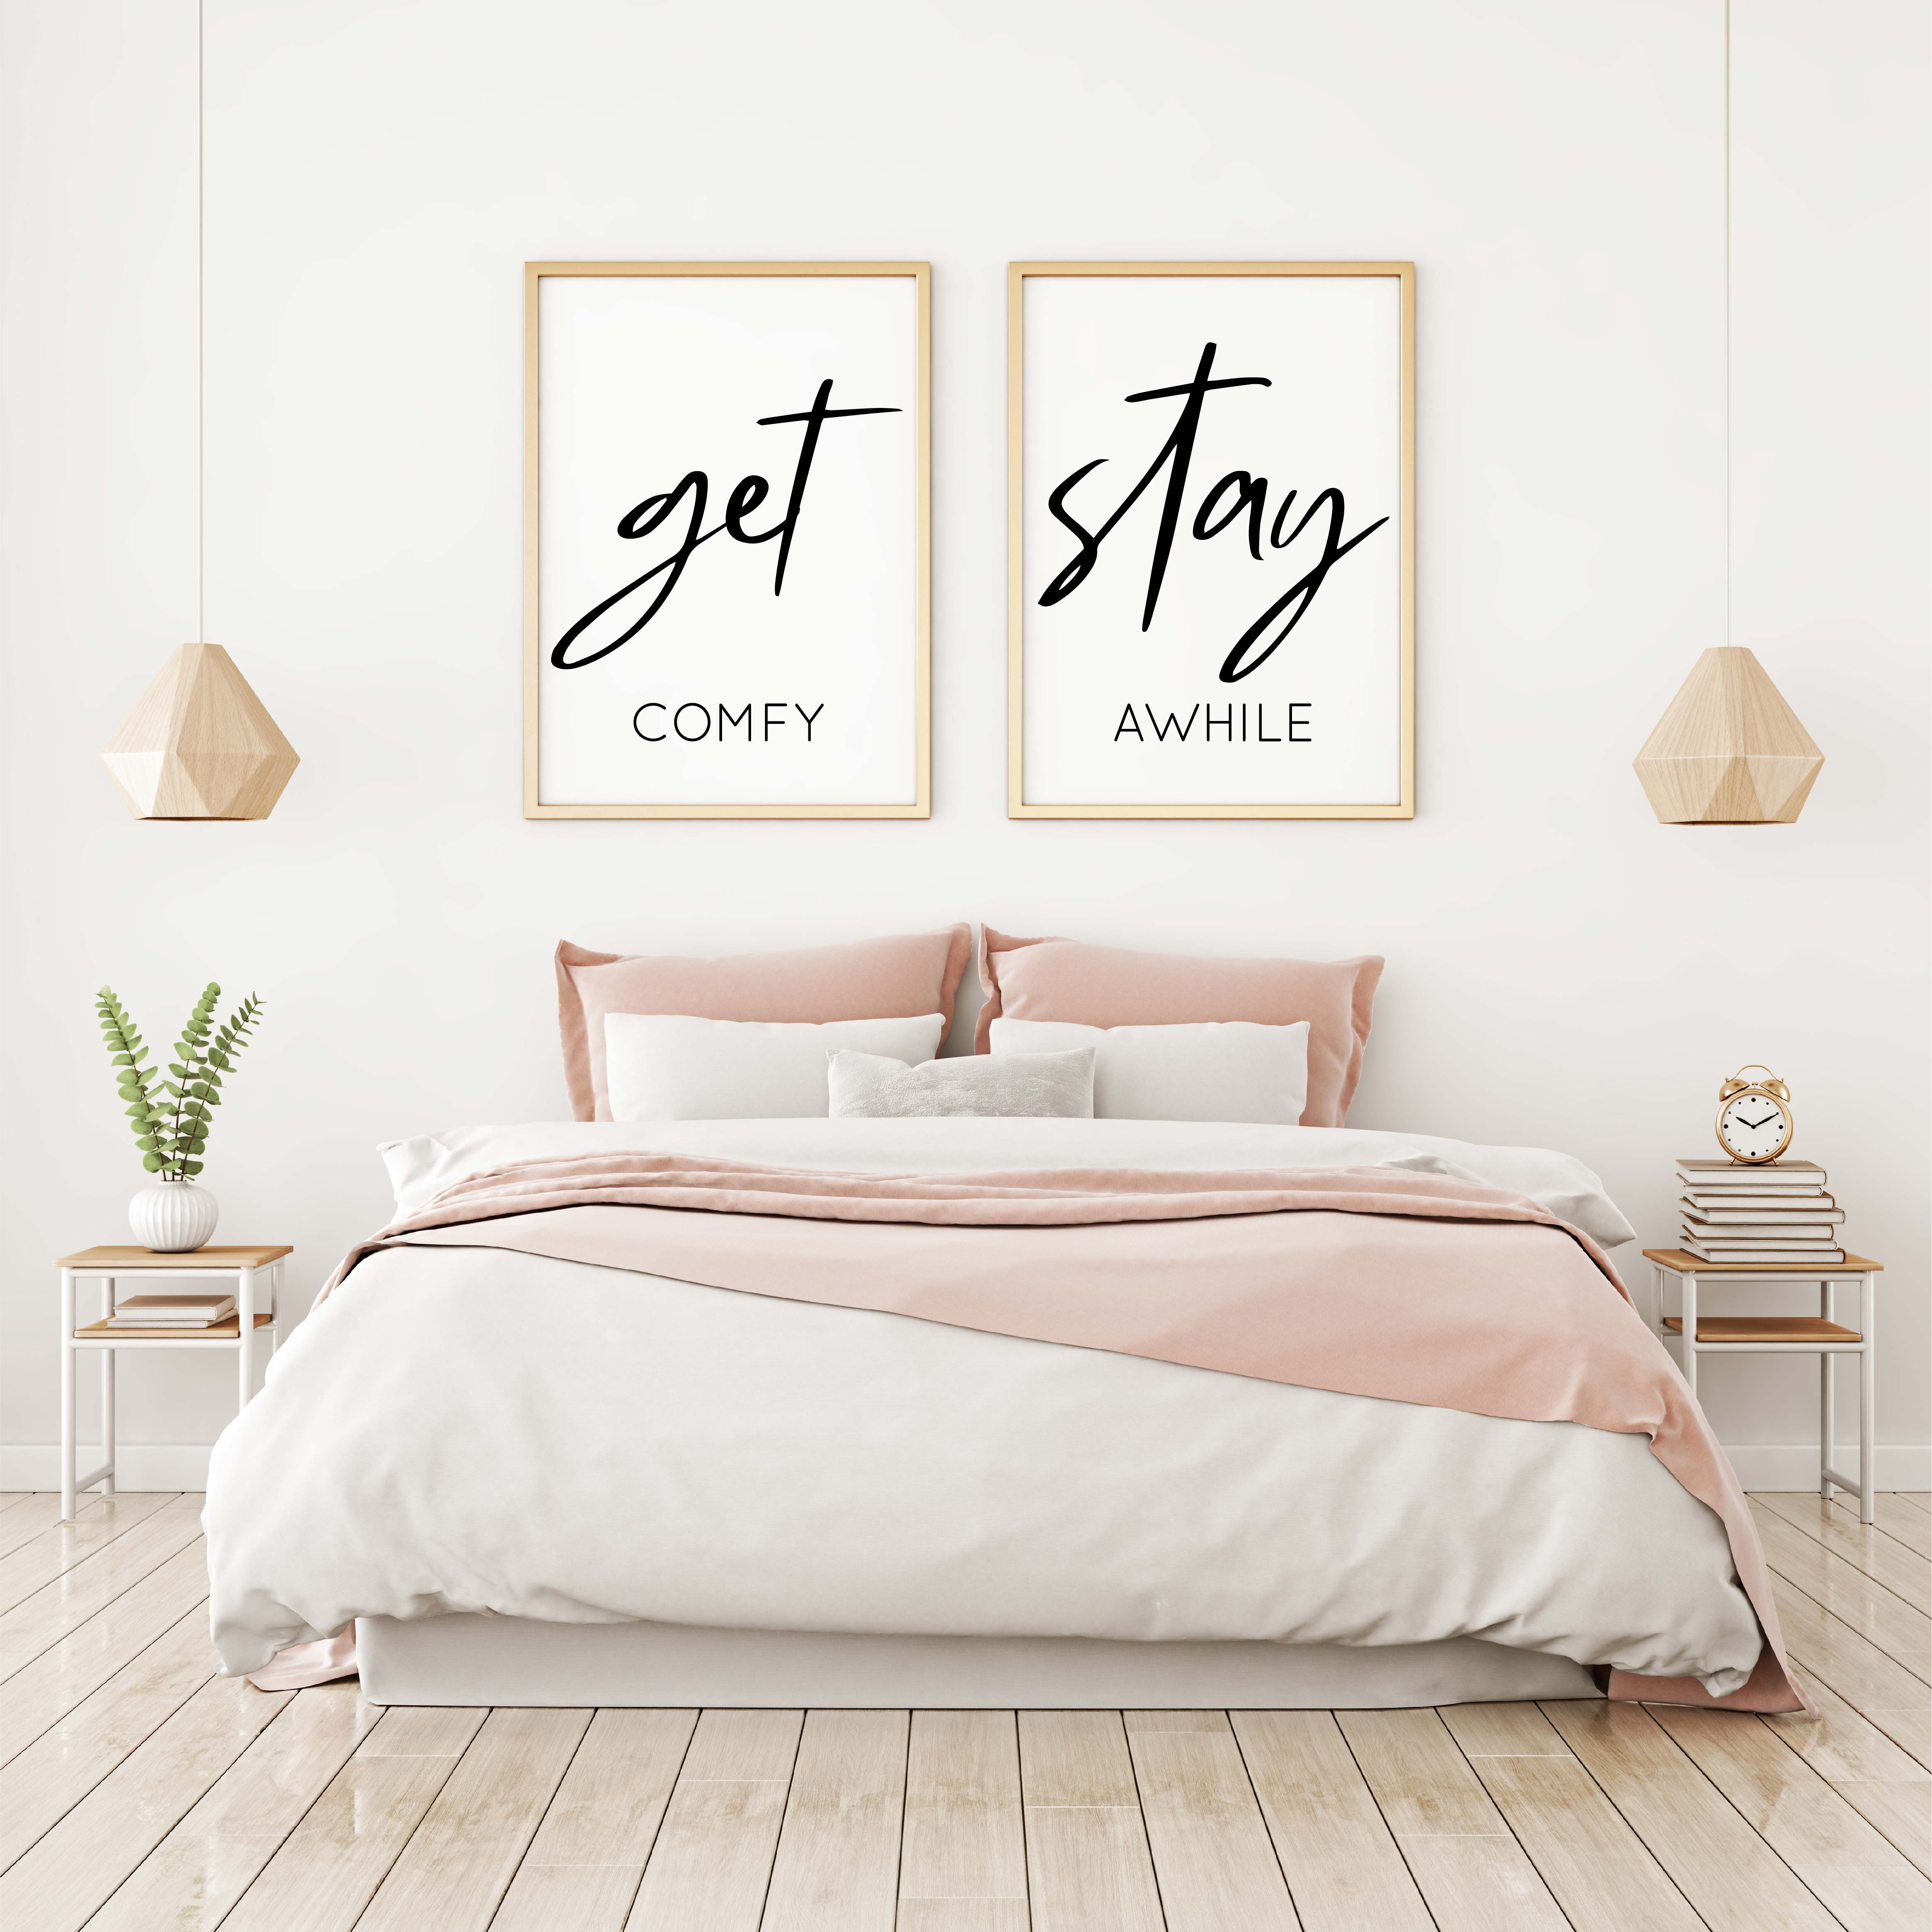 Get Comfy Stay Awhile Set Of 2 Above Bed Art Modern Bedroom Decor Guest Room Decor Guest Room S Printable Wall Art Bedroom Simple Wall Art Bedroom Decor